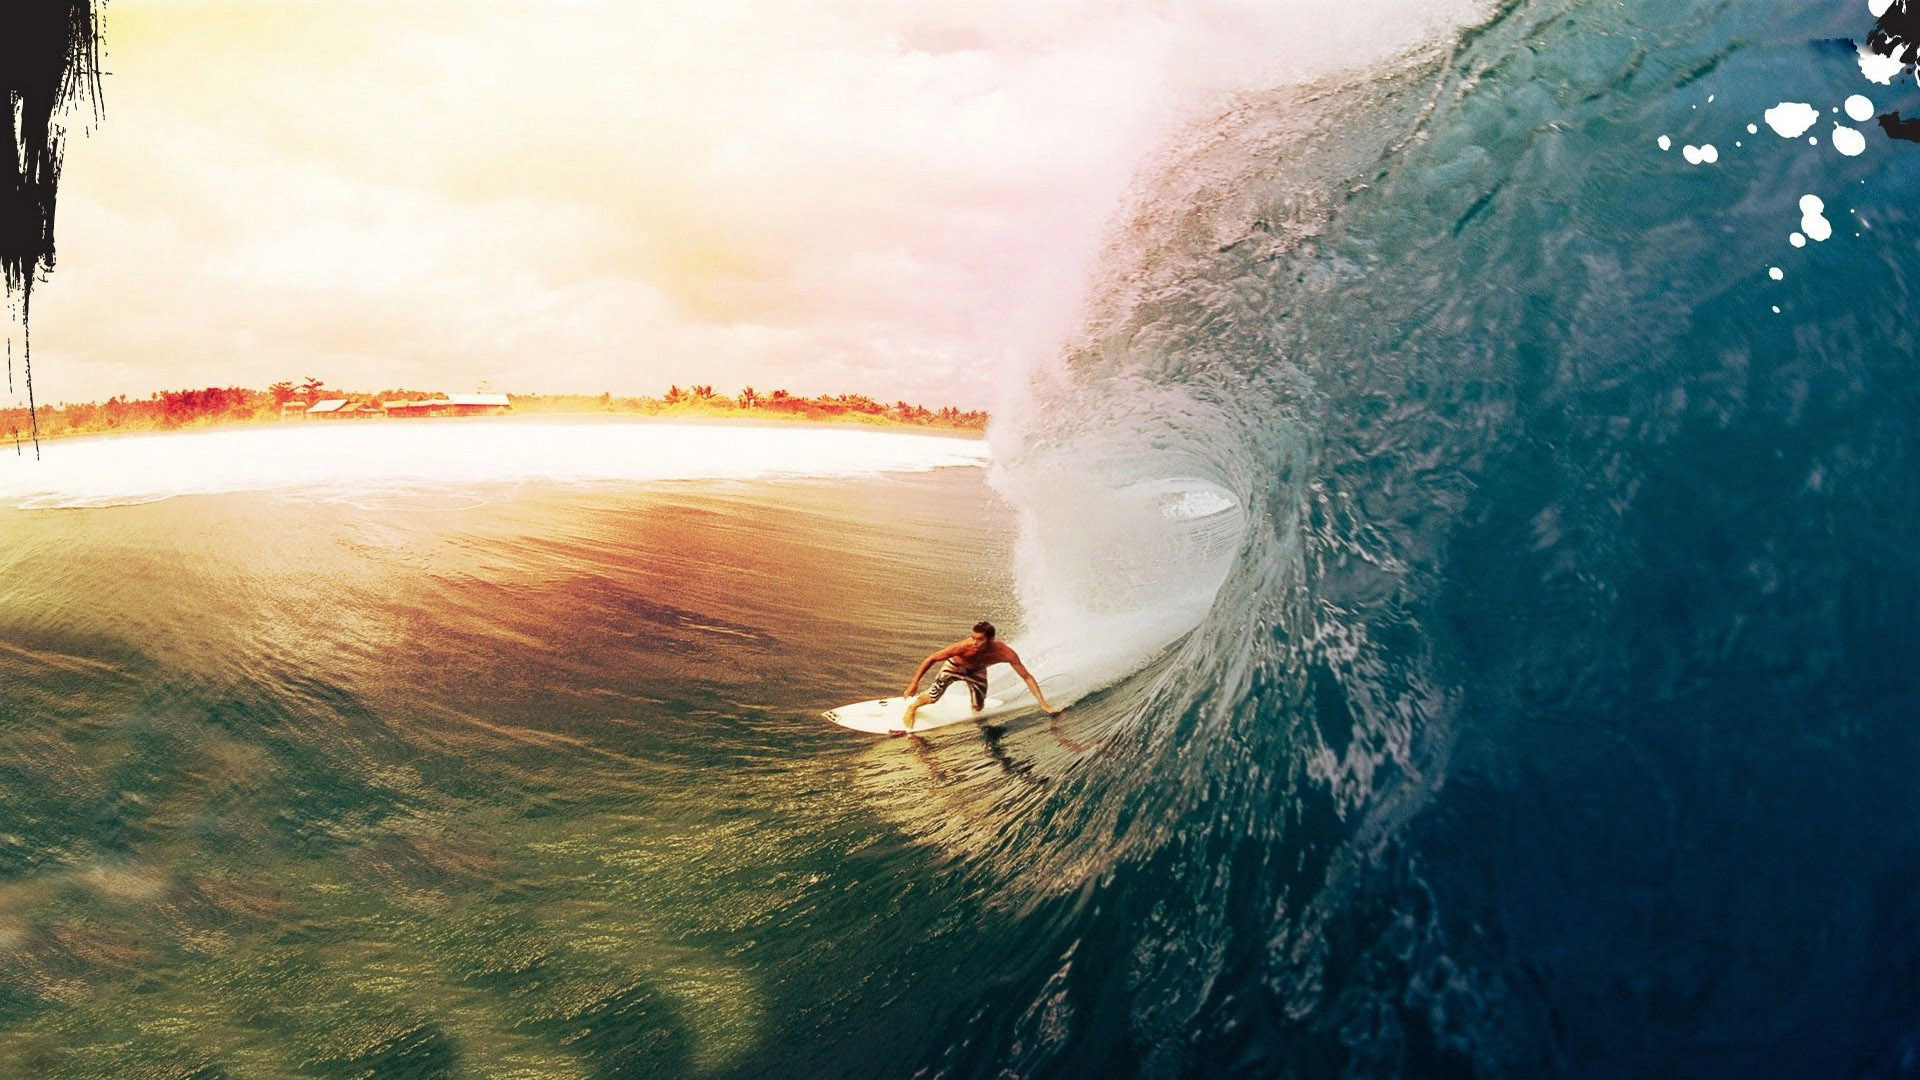 Surfing Wallpapers HD 1920x1080